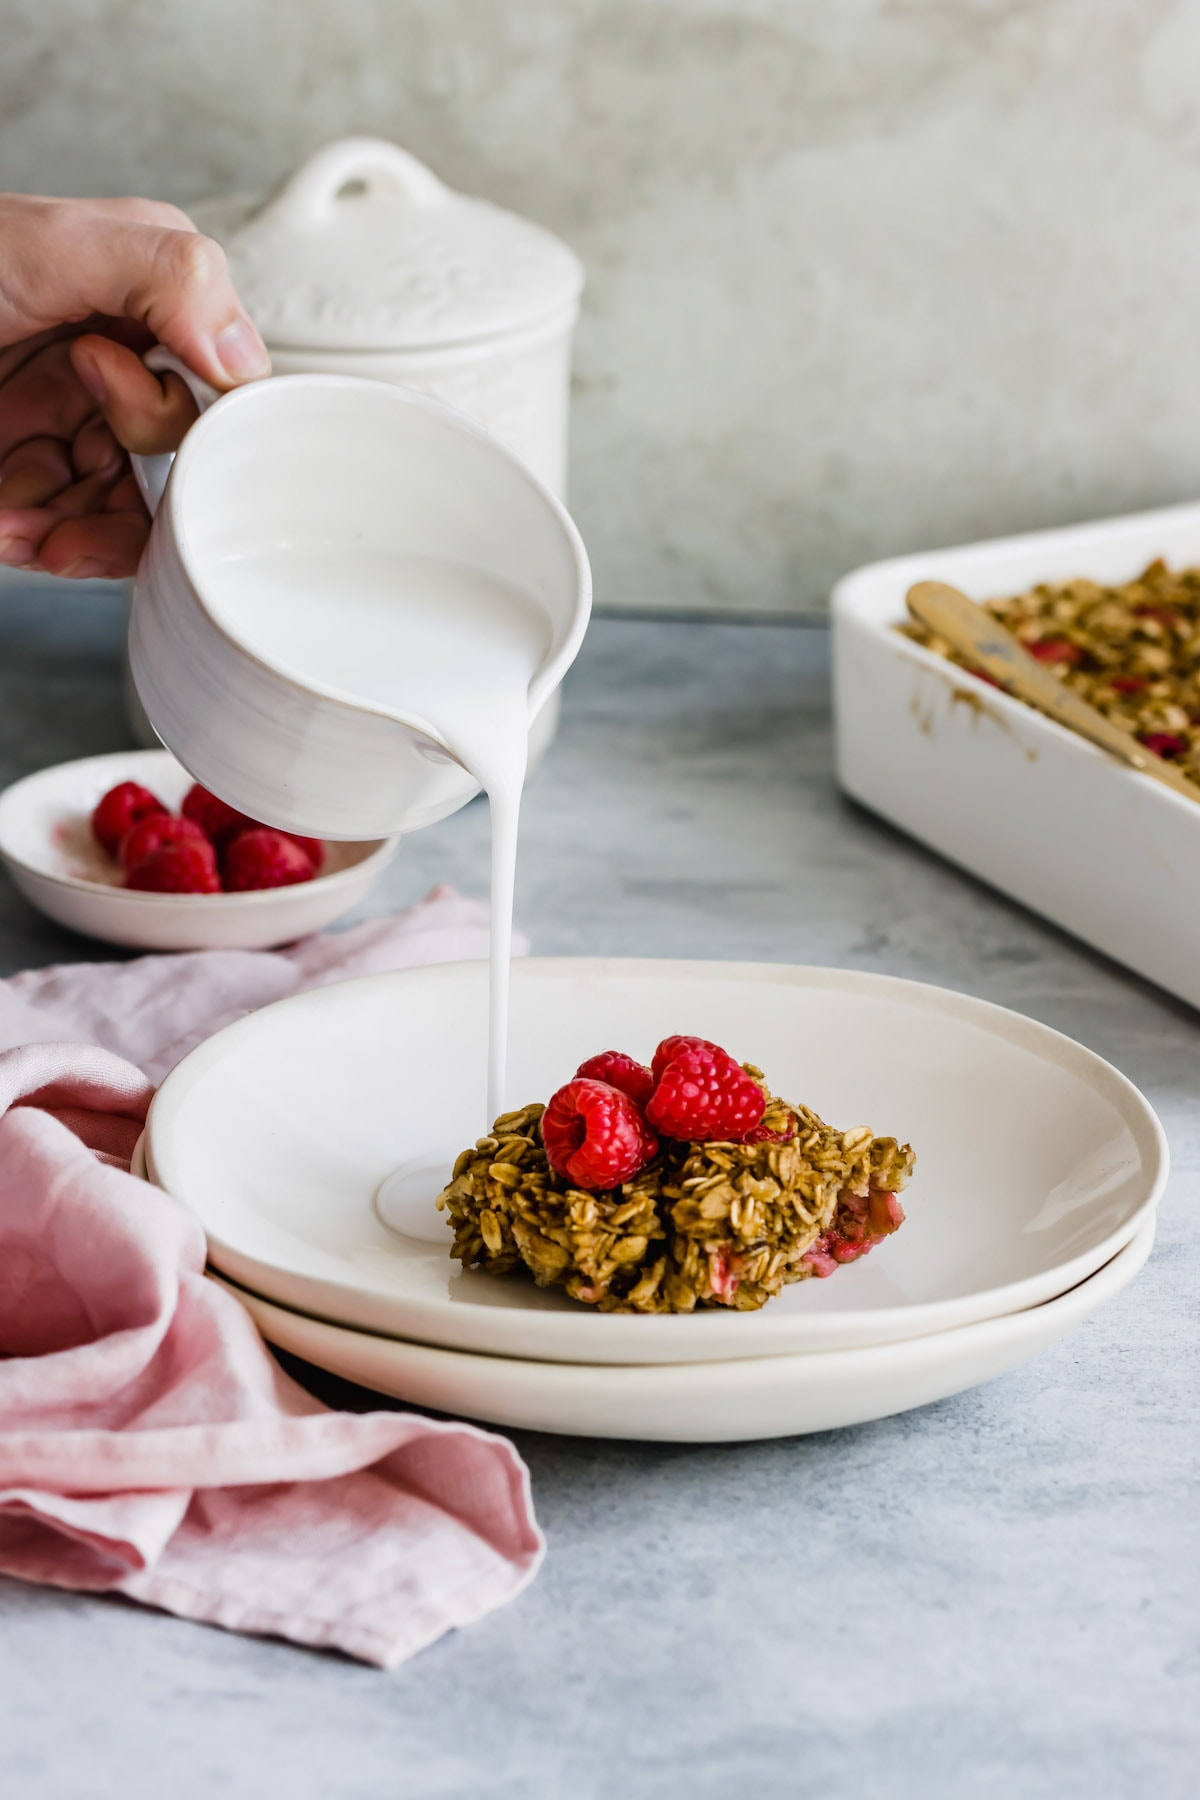 Milk poured over raspberry baked oatmeal.